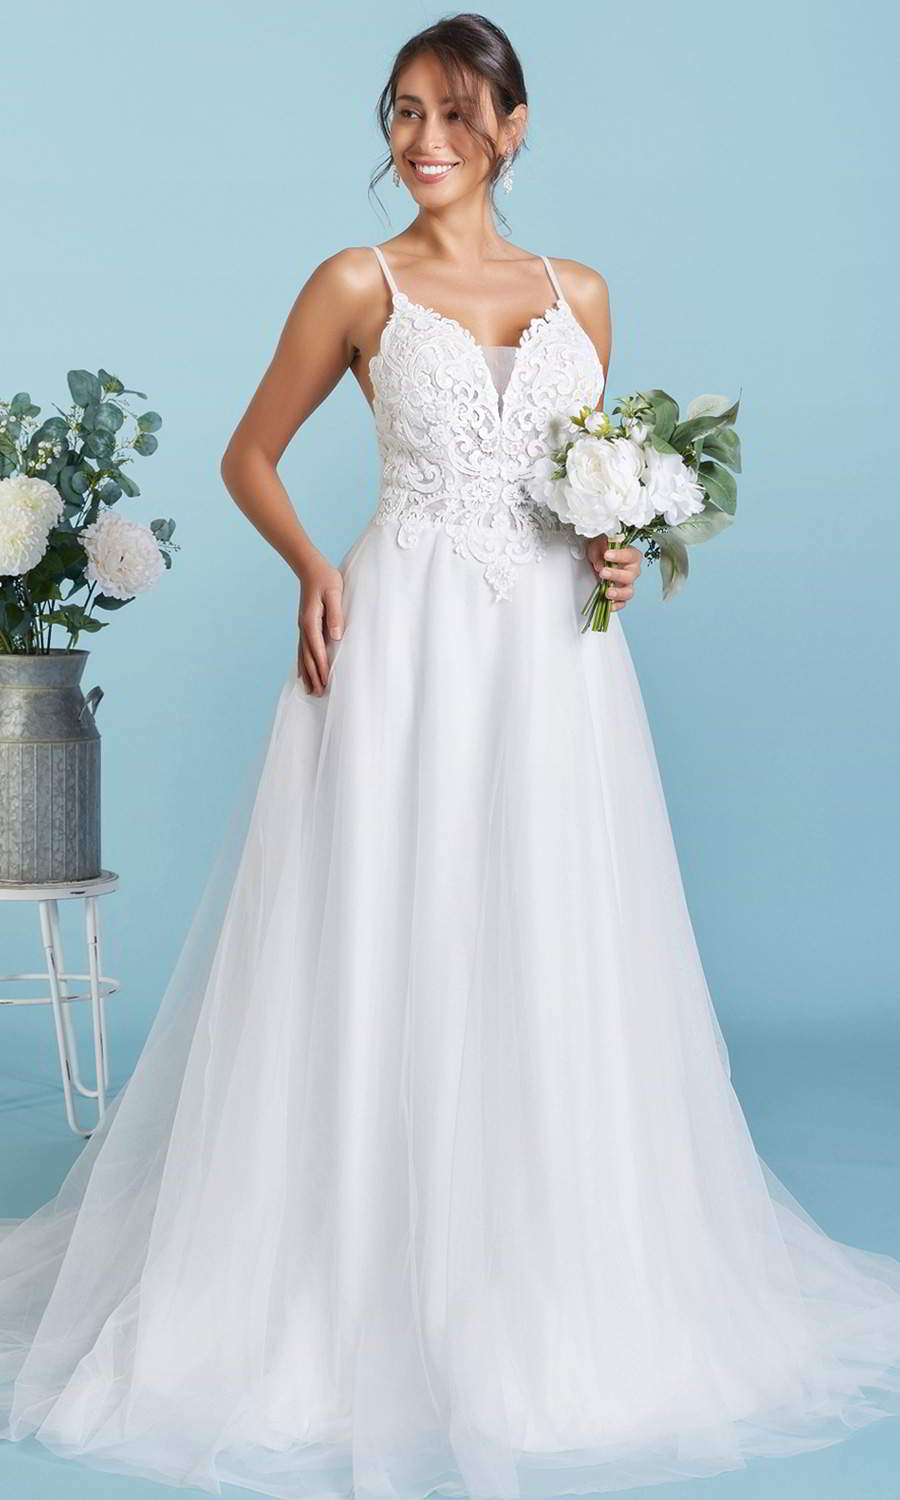 afarose 2021 bridal sleeveless straps sweetheart neckline heavily embellished lace bodice a line ball gown wedding dress (maisie) fv